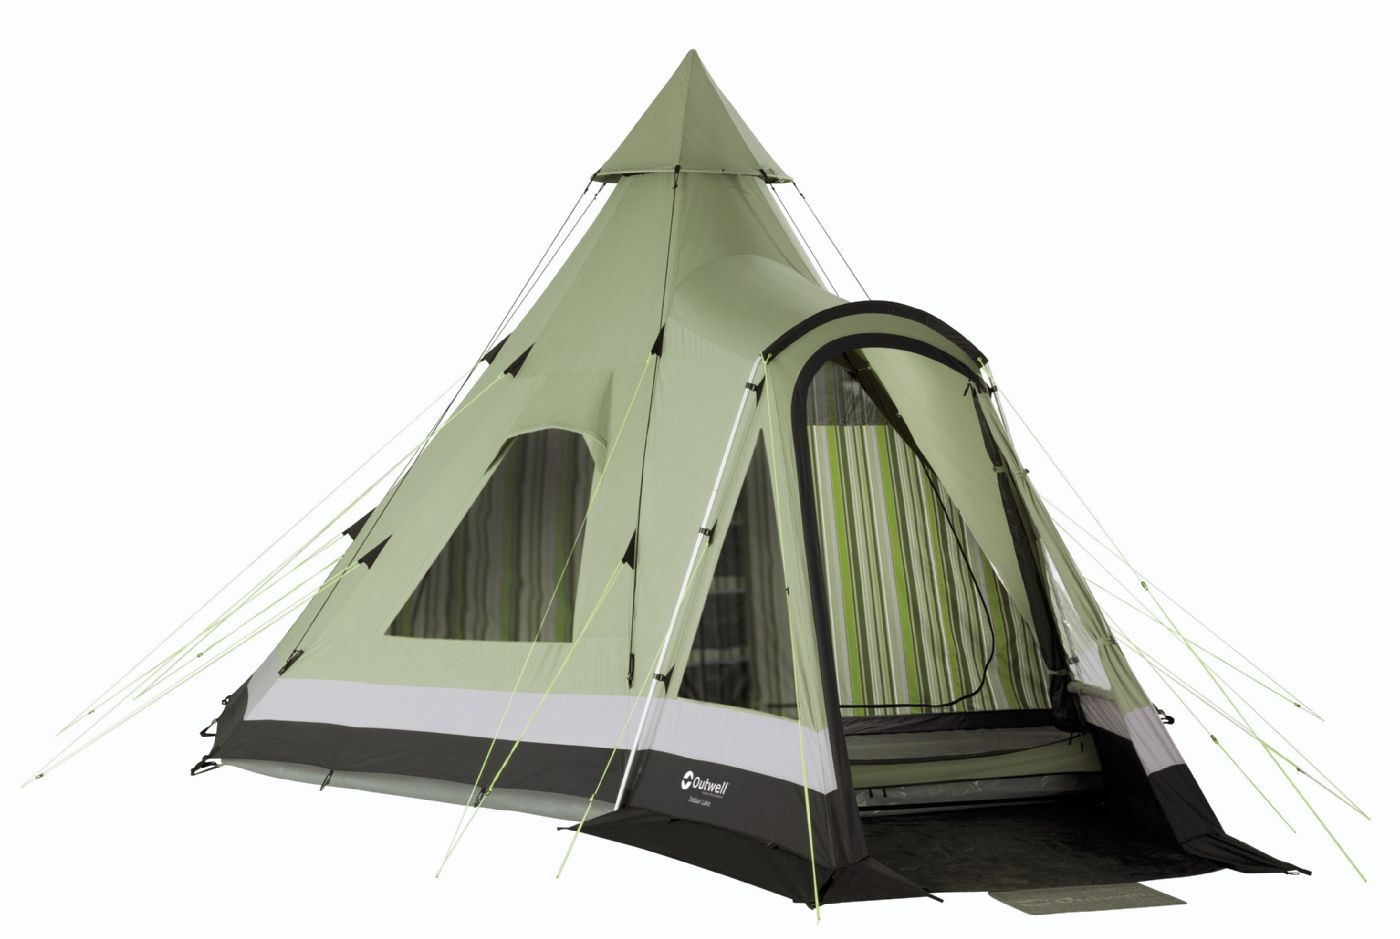 sc 1 st  Outdoor Megastore & Outwell Indian Lake Tent with FREE Footprint Groundsheet